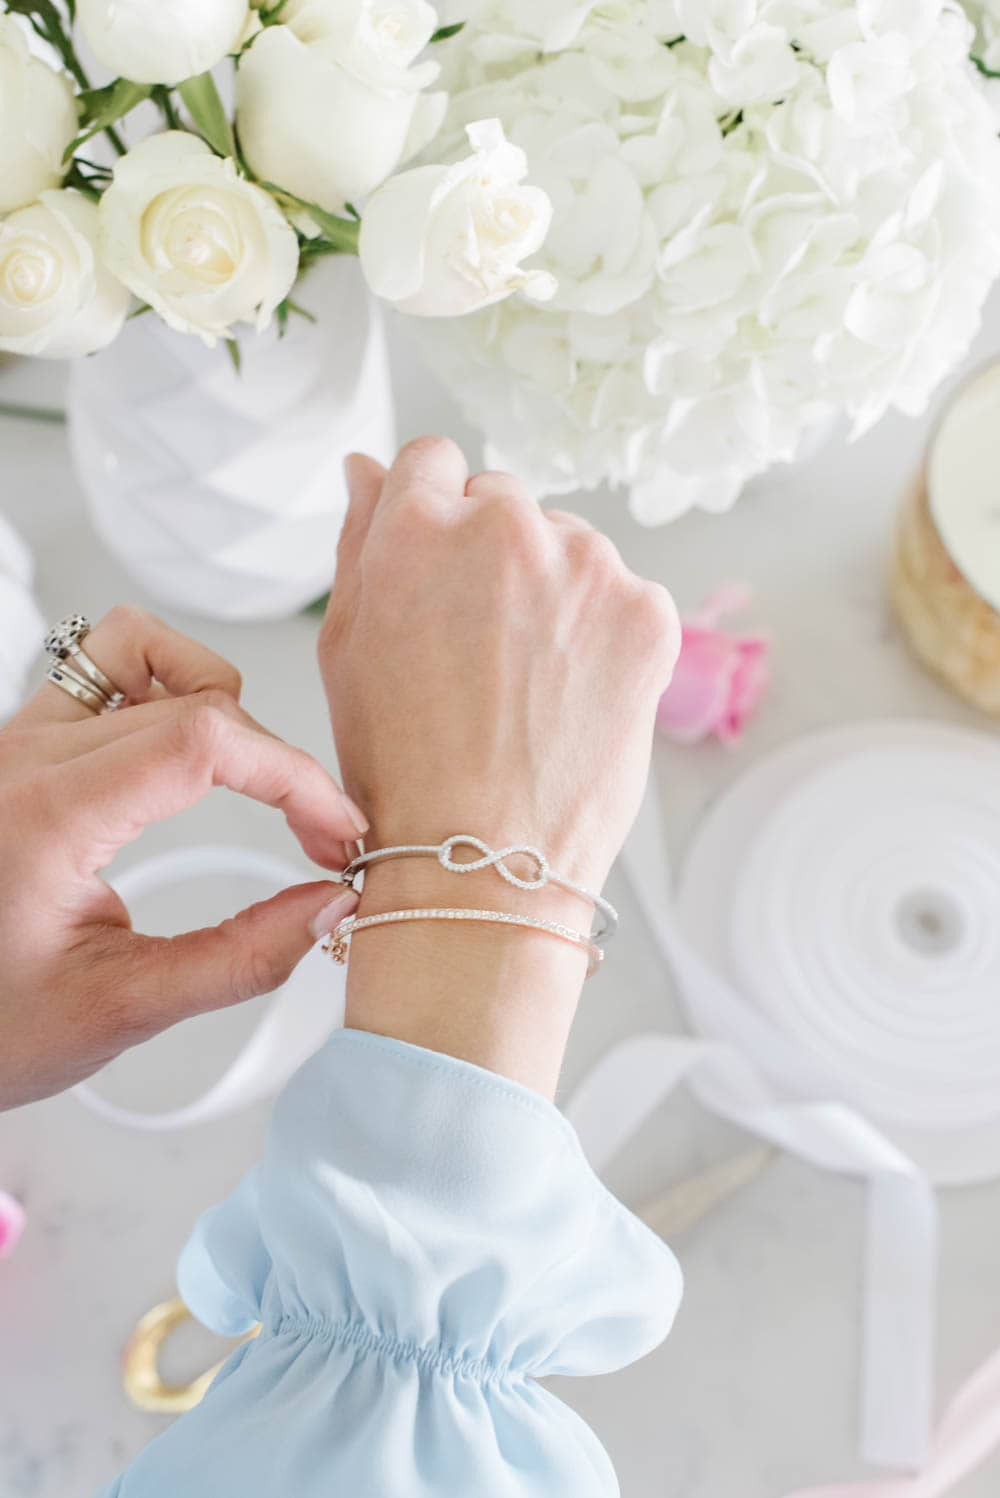 Mother's Day gifts are so much more than just a card and flowers. Give the gift of fine jewelry from Kohl's that has sentimental value and can be passed down through the family for generations to come. #ad #KohlsJewelry #KohlsFinds